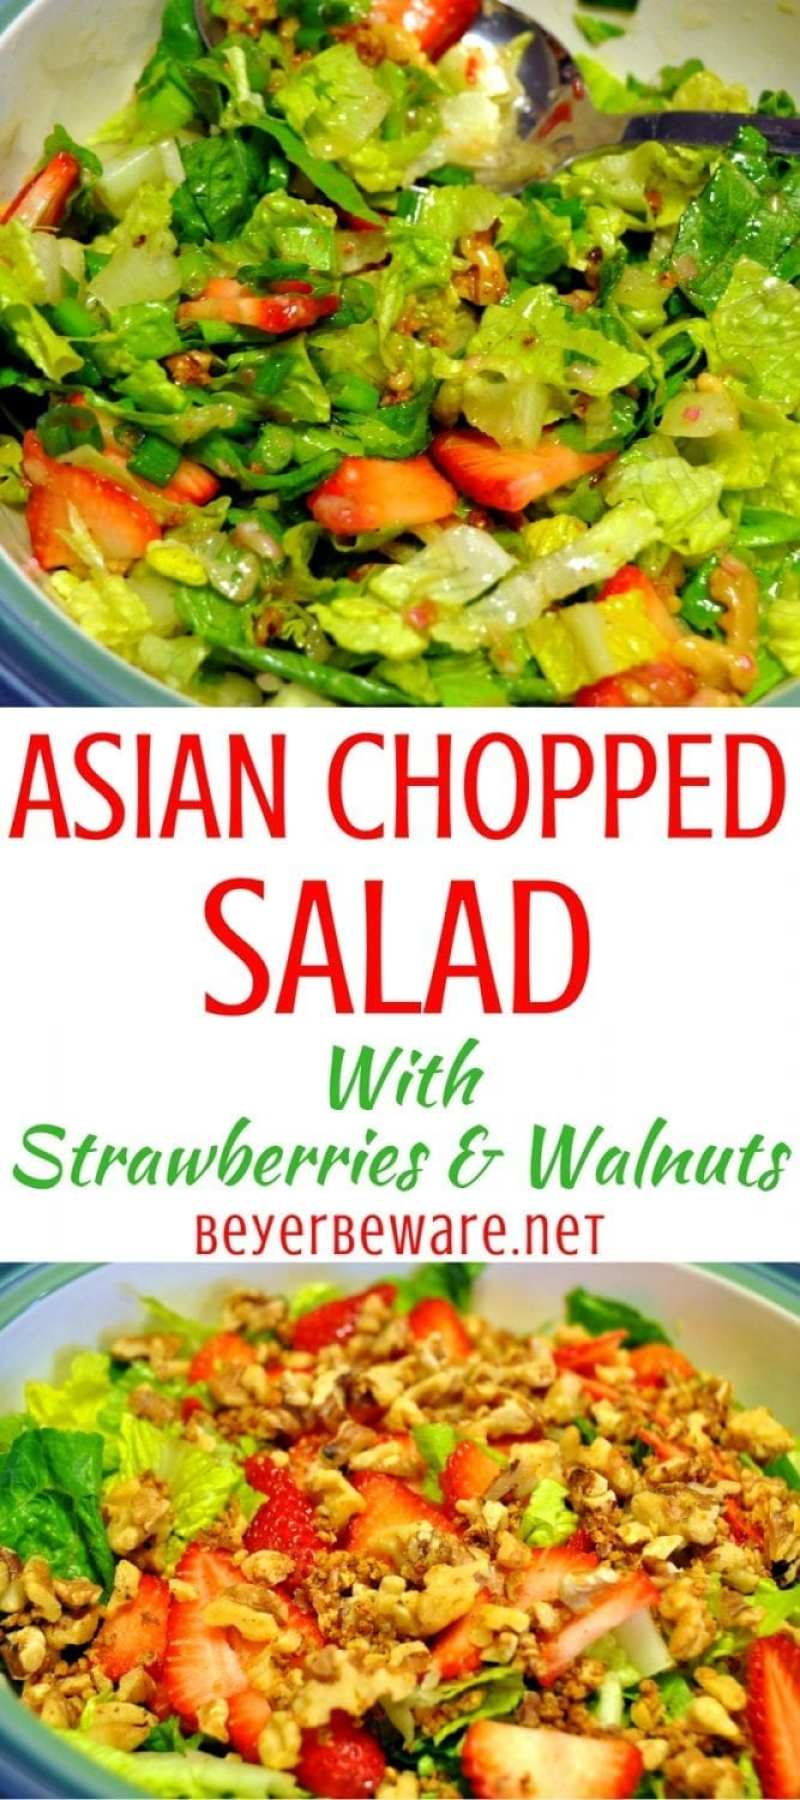 This Asian Chopped Salad with berries recipe is full of sweet and spice with just enough tanginess thanks to the combinations of strawberries, spicy walnuts, and a mustard vinaigrette.